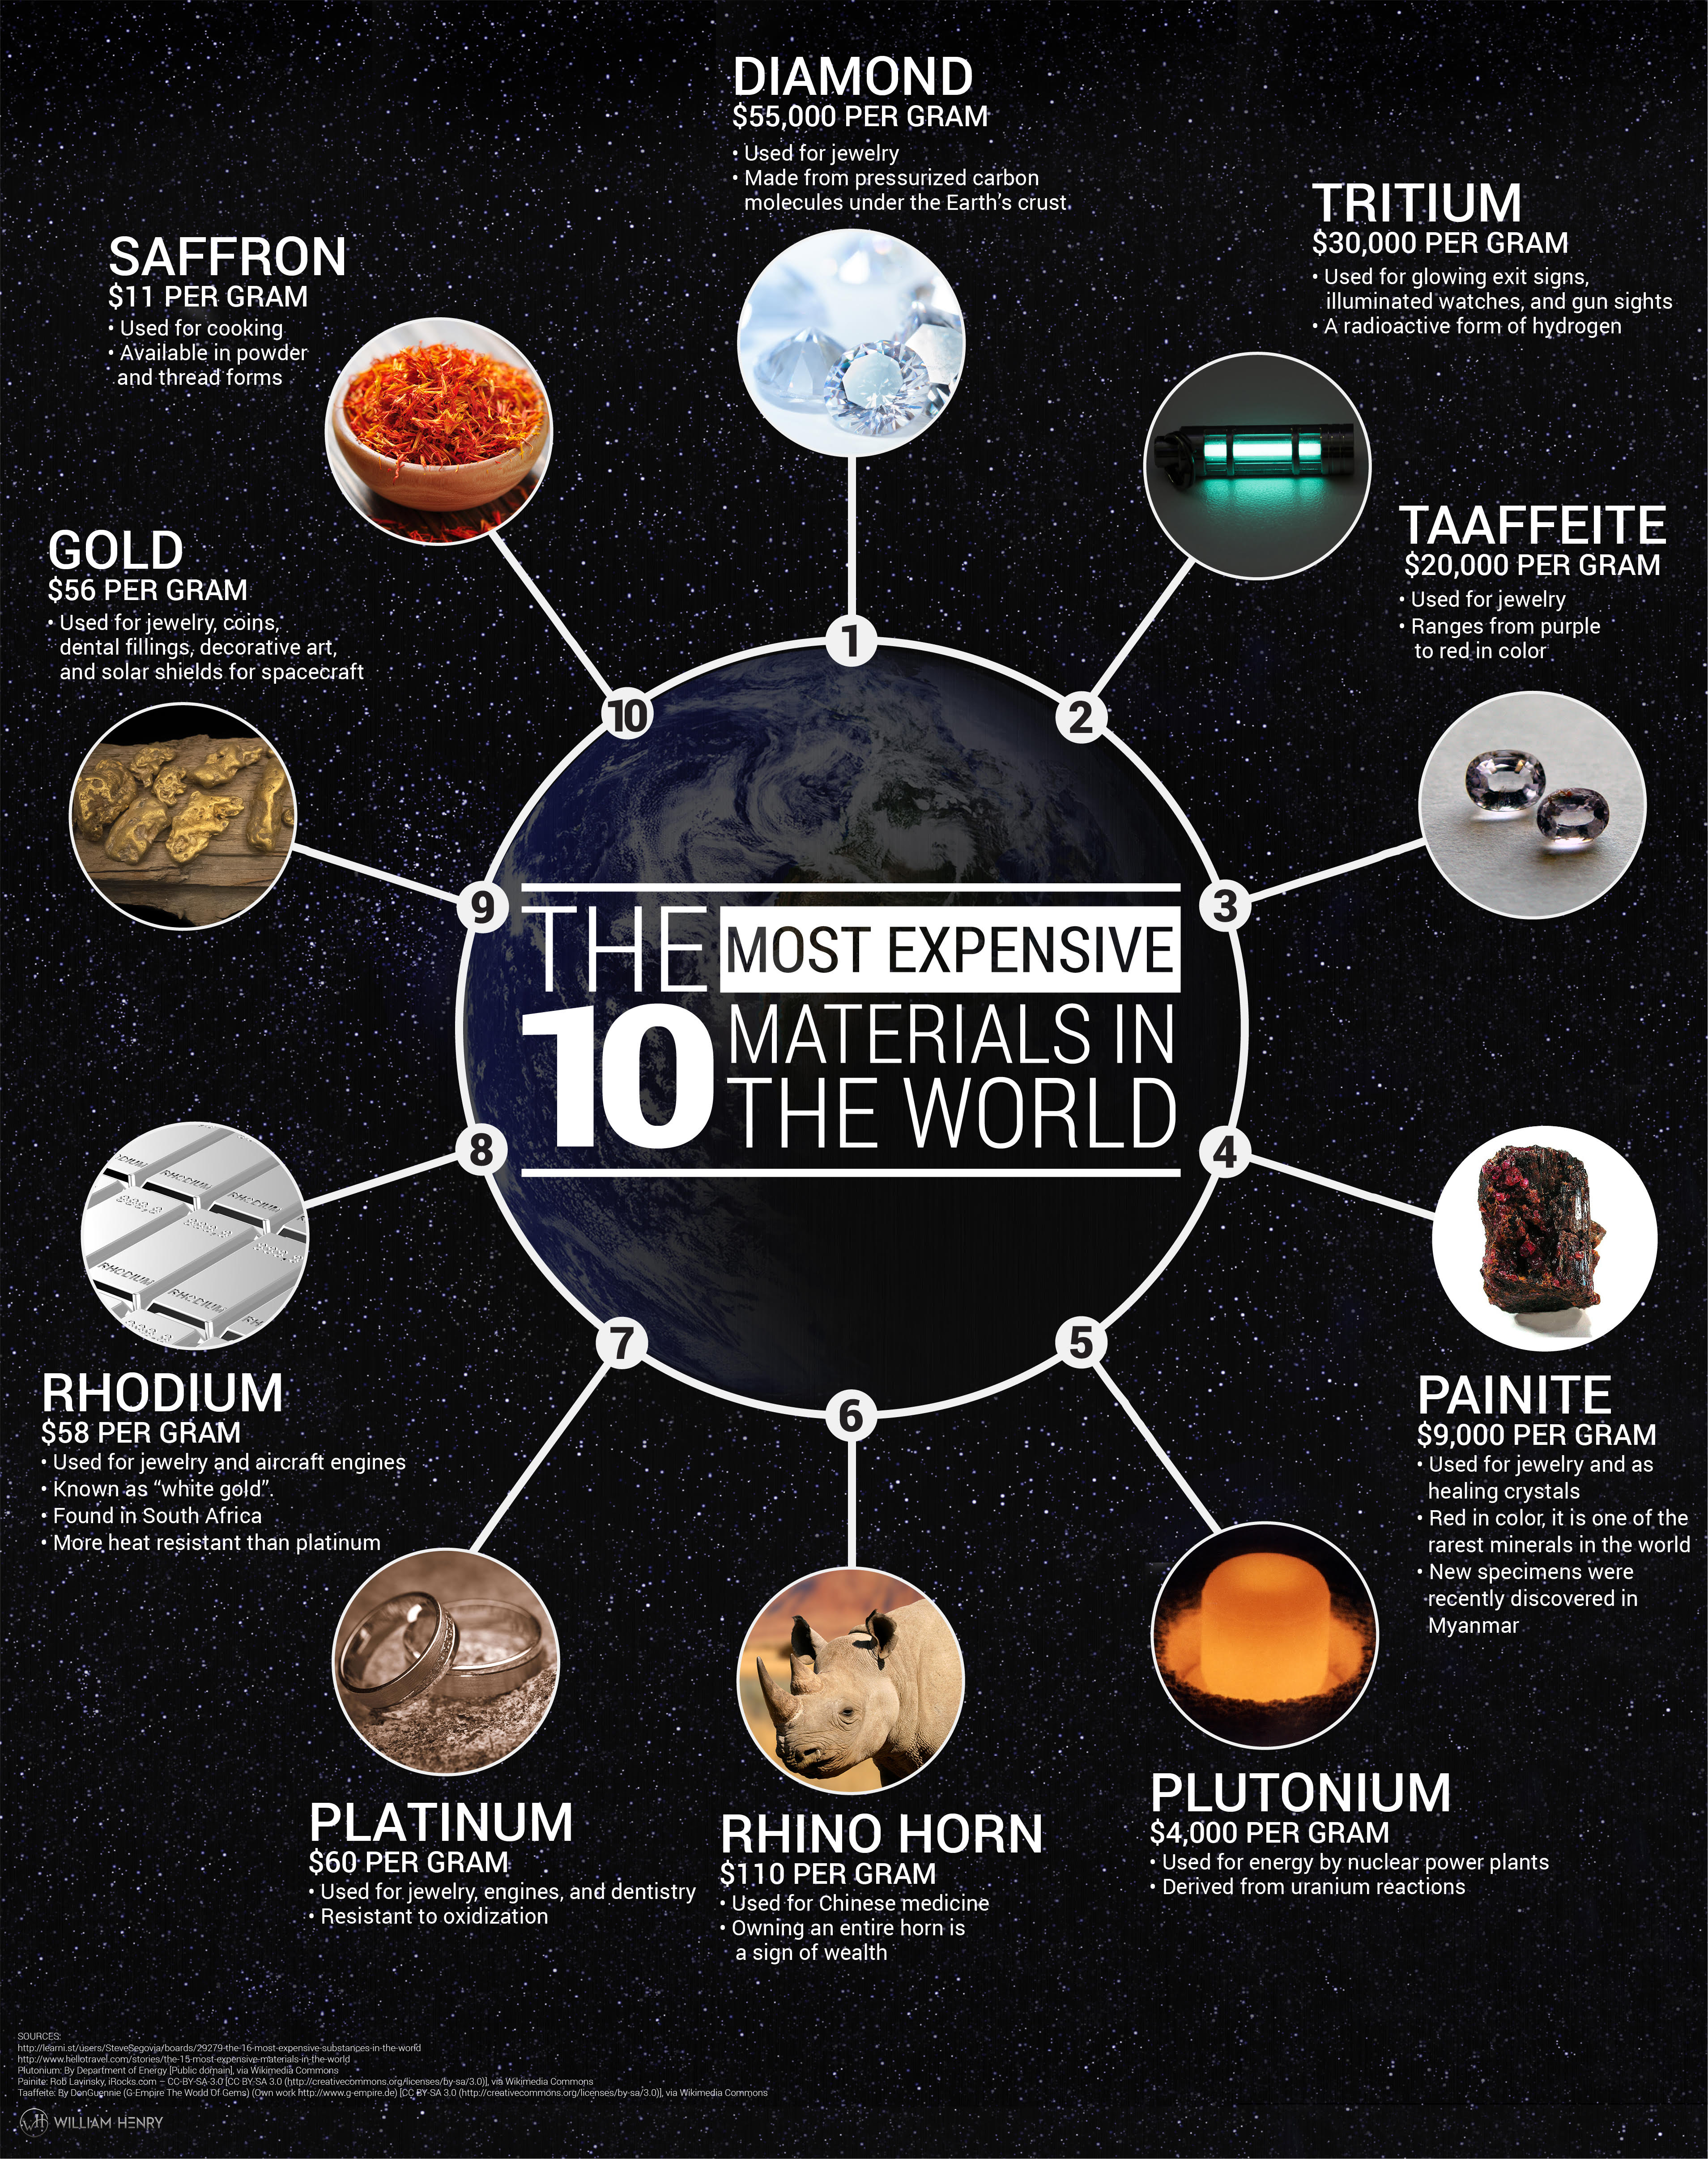 The Most Expensive Materials In The World